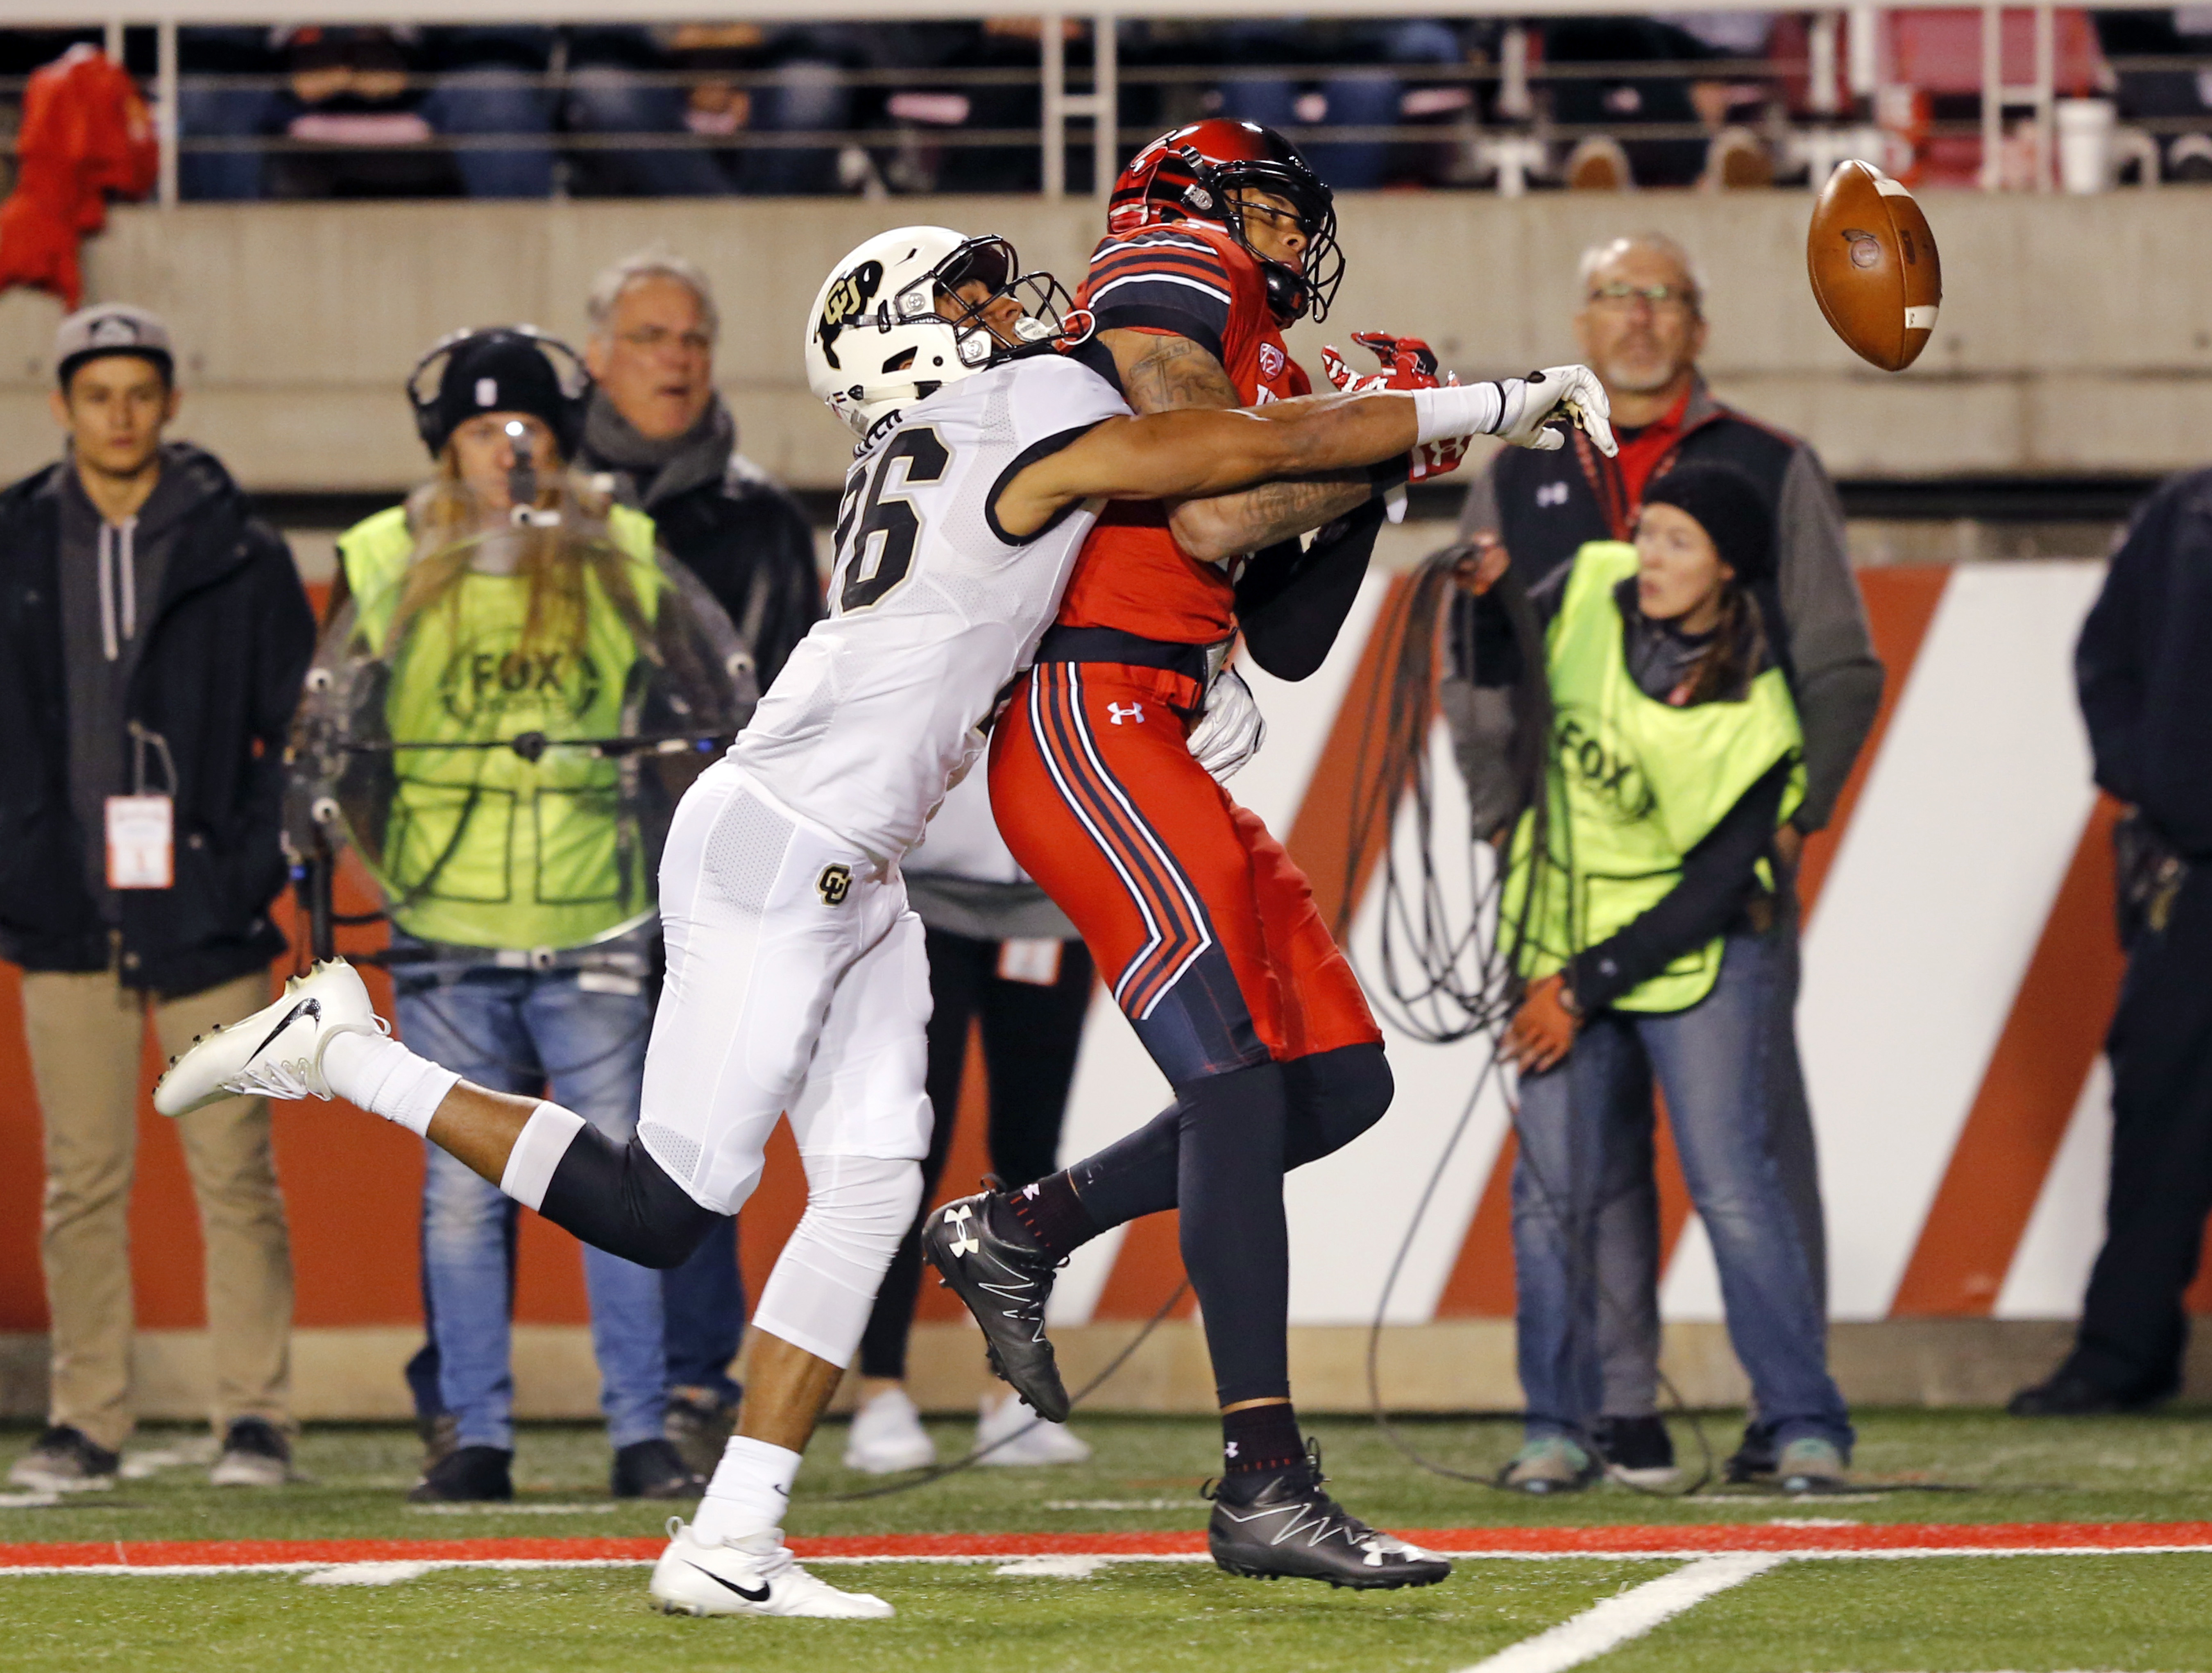 Defensive back Isaiah Oliver was also a track decathlete at Colorado.